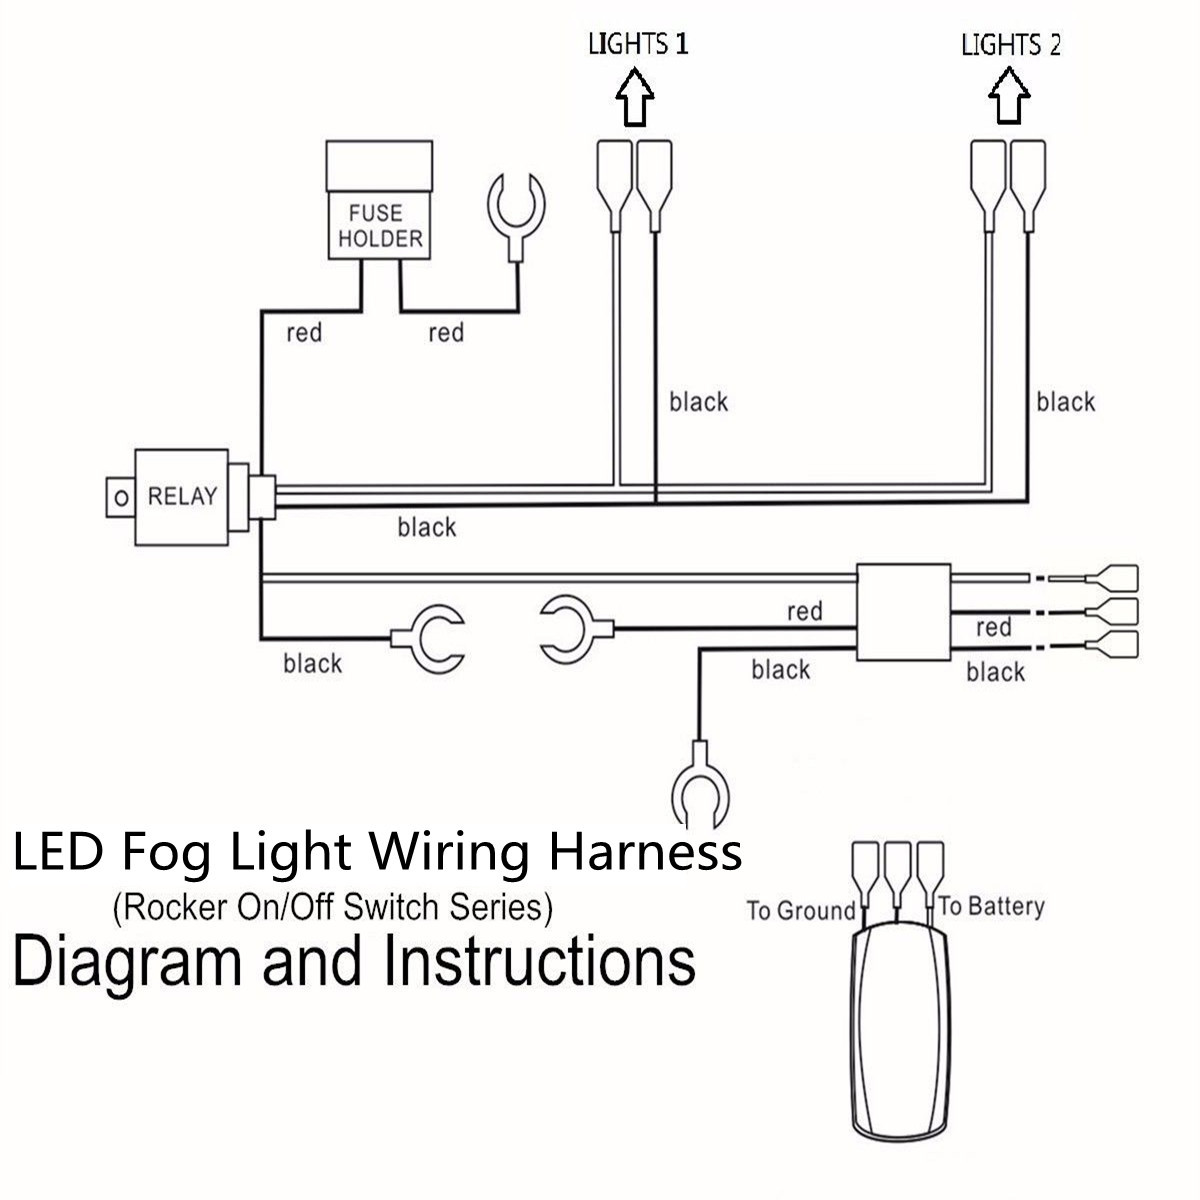 Vadj carling switch wiring diagram carling v series rocker switch on wiring lights in series diagram Wiring Harness Diagram how to wire multiple lights on one circuit